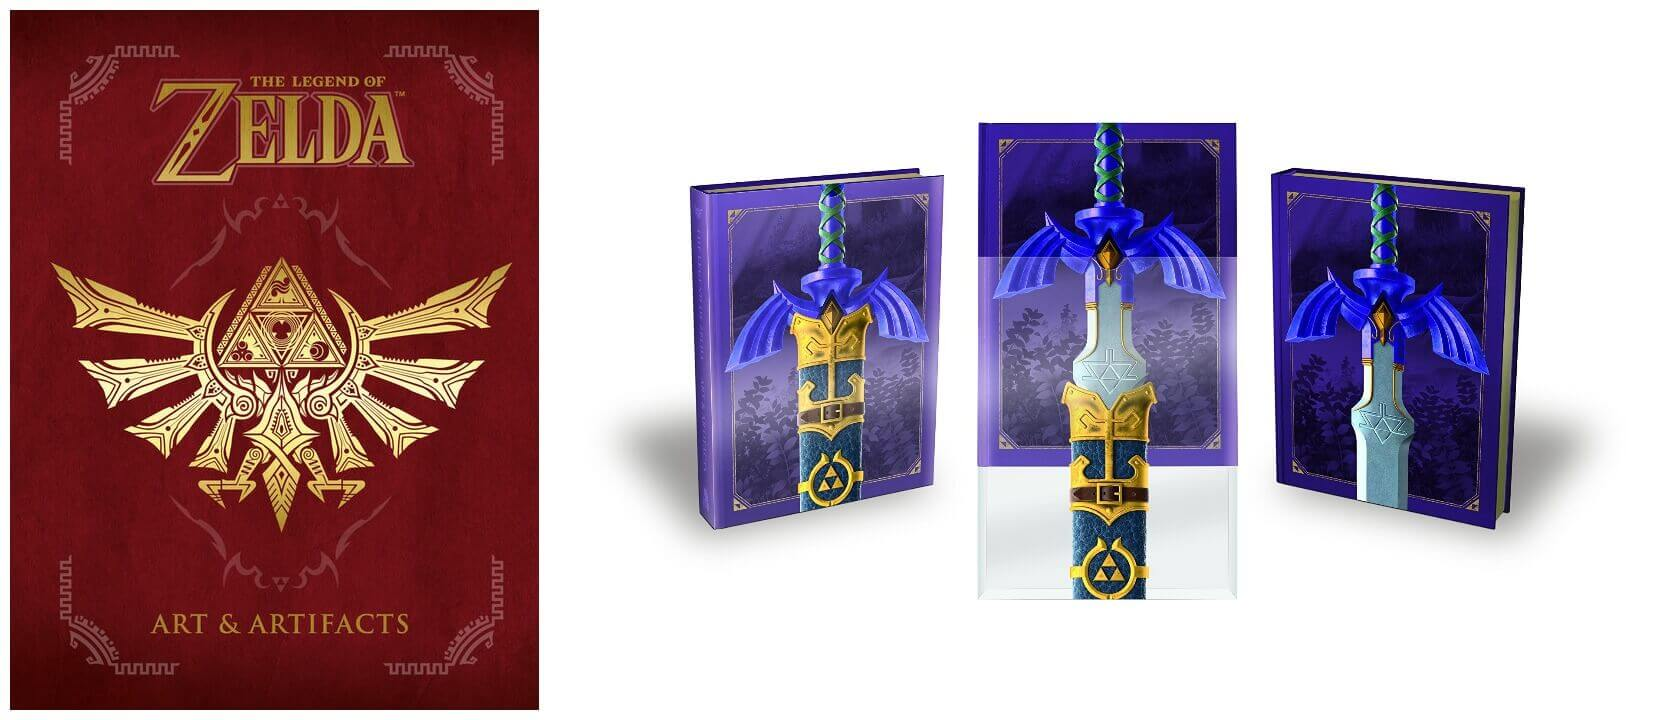 February 2017 Manga Releases Covers of The Legend of Zelda Art & Artifacts and Art & Artifacts Limited Edition.